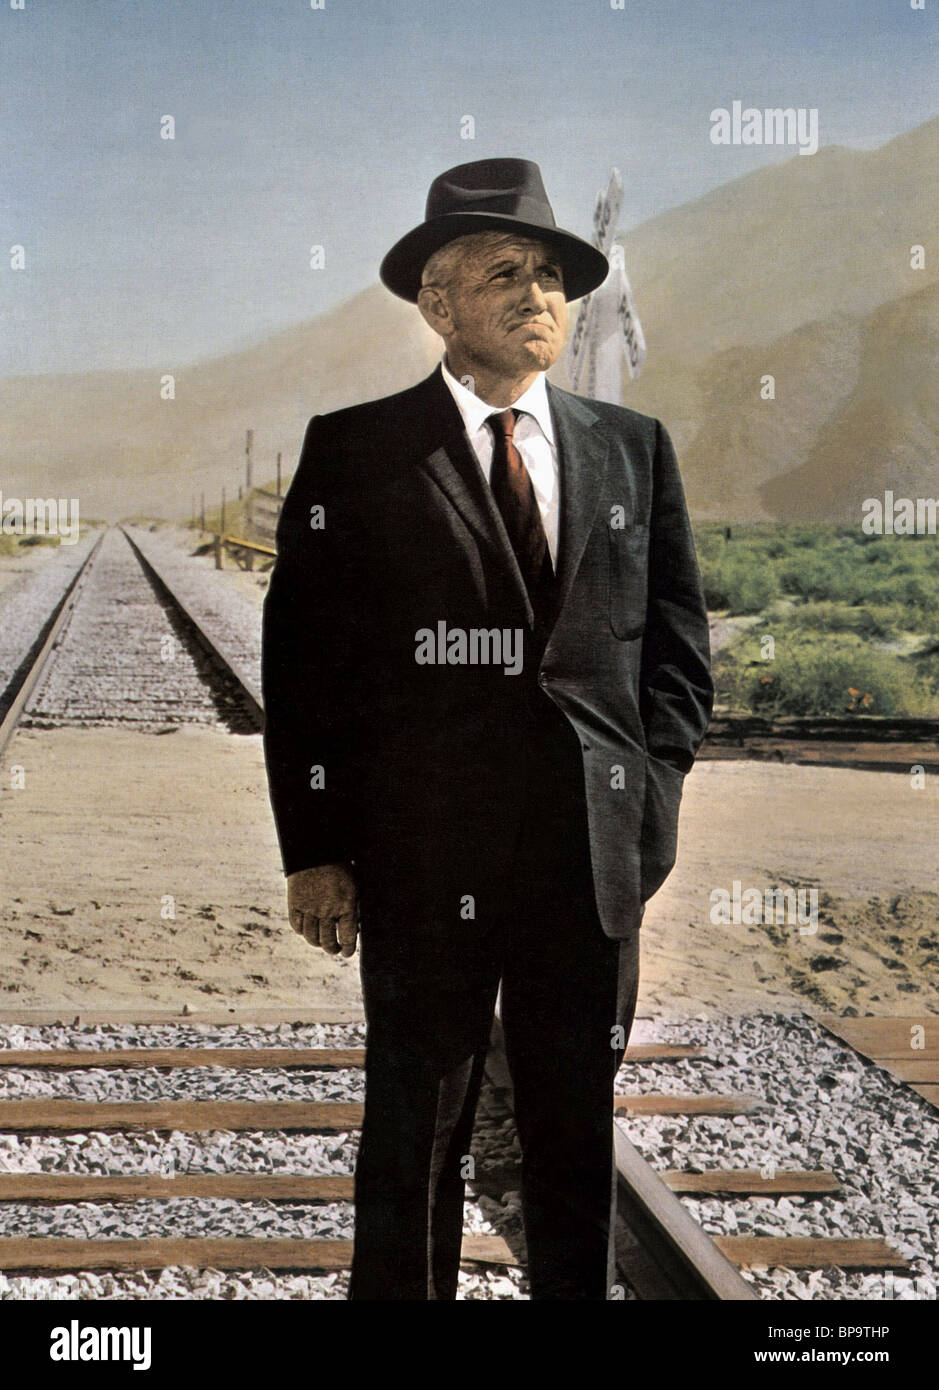 SPENCER TRACY A BAD DAY AT BLACK ROCK (1955 Stock Photo - Alamy